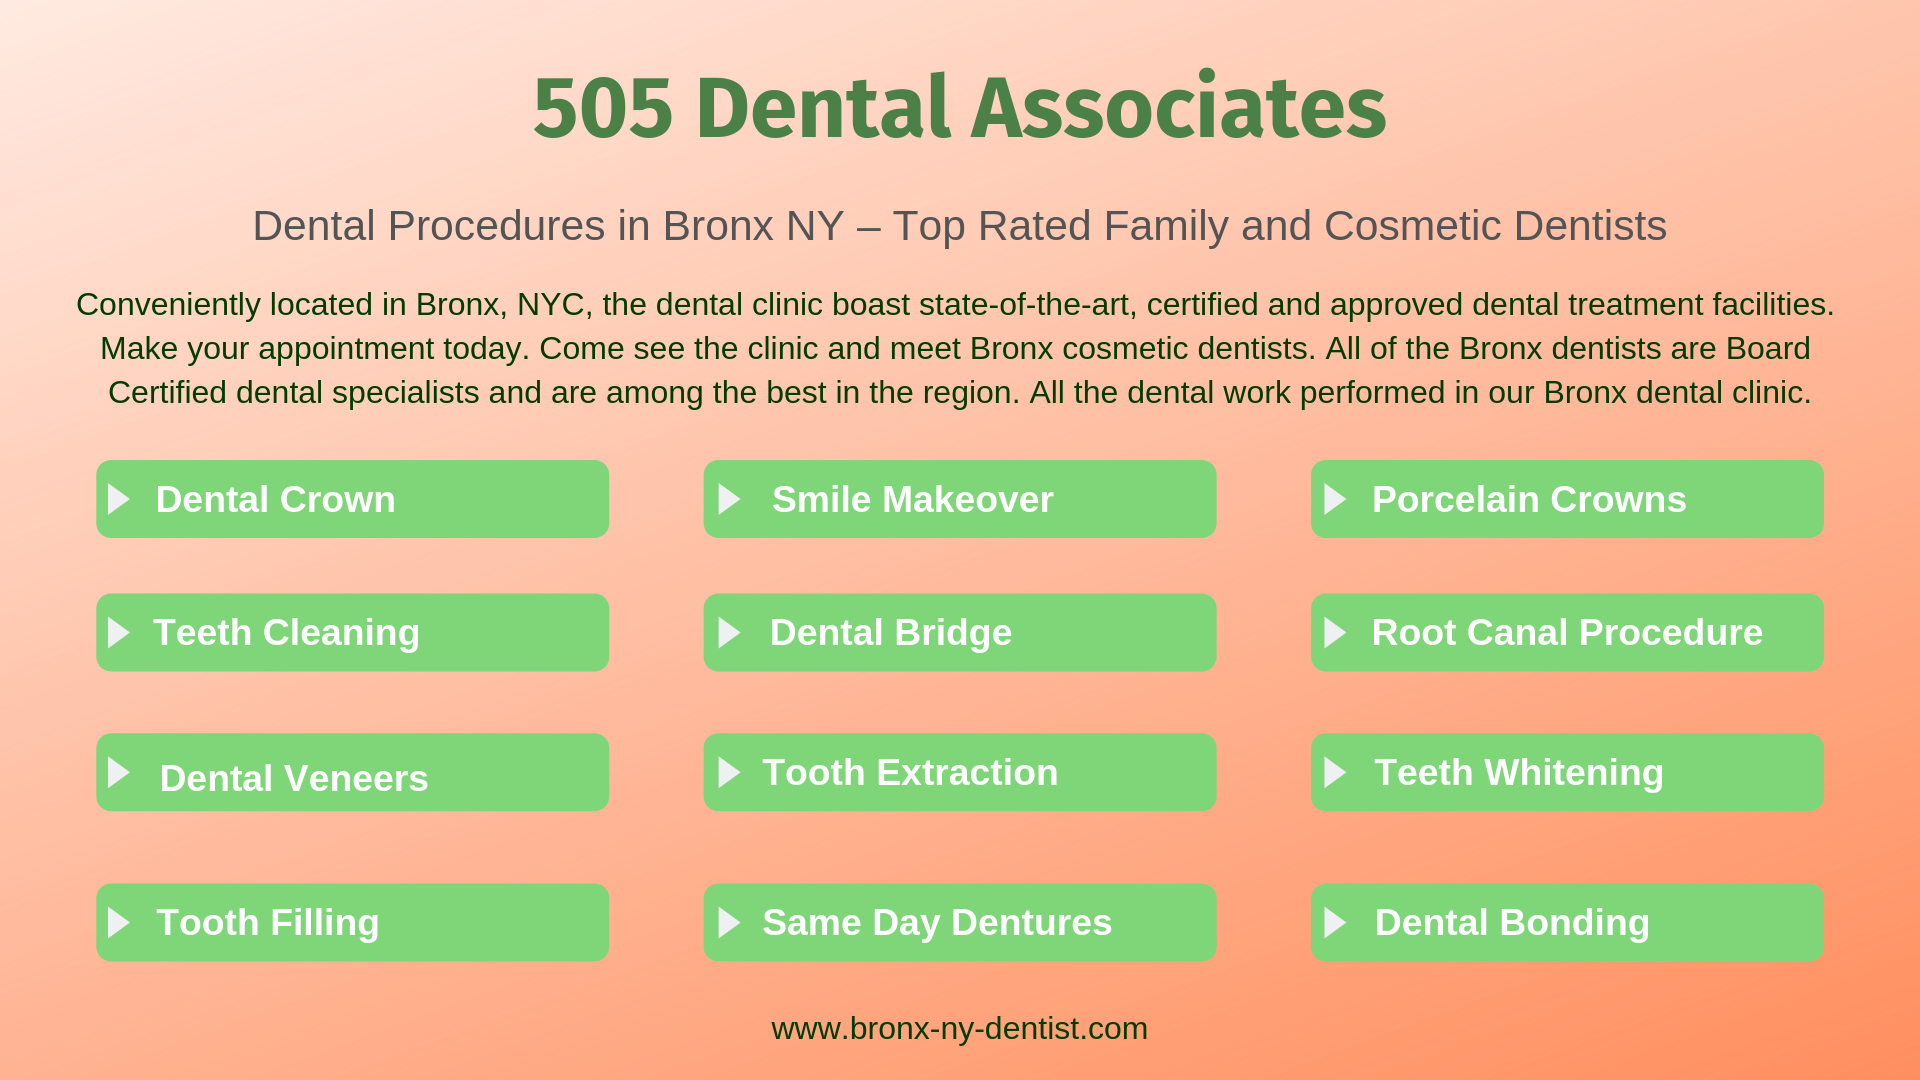 505 Dental Associates in the Bronx